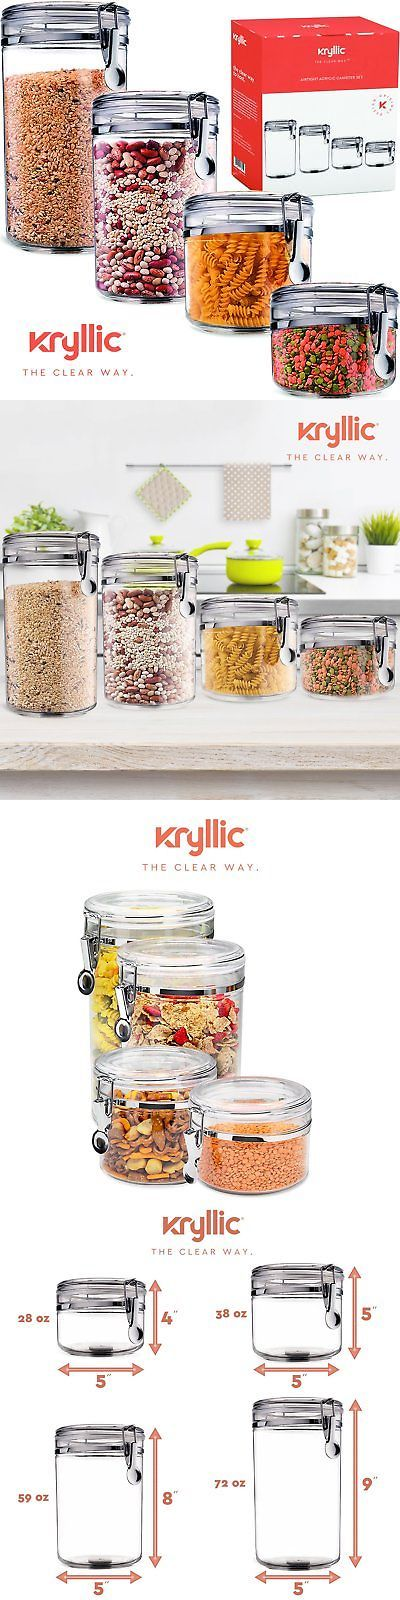 Food Storage containers canister 38 oz Air Tight Canisters with lids Kryllic.